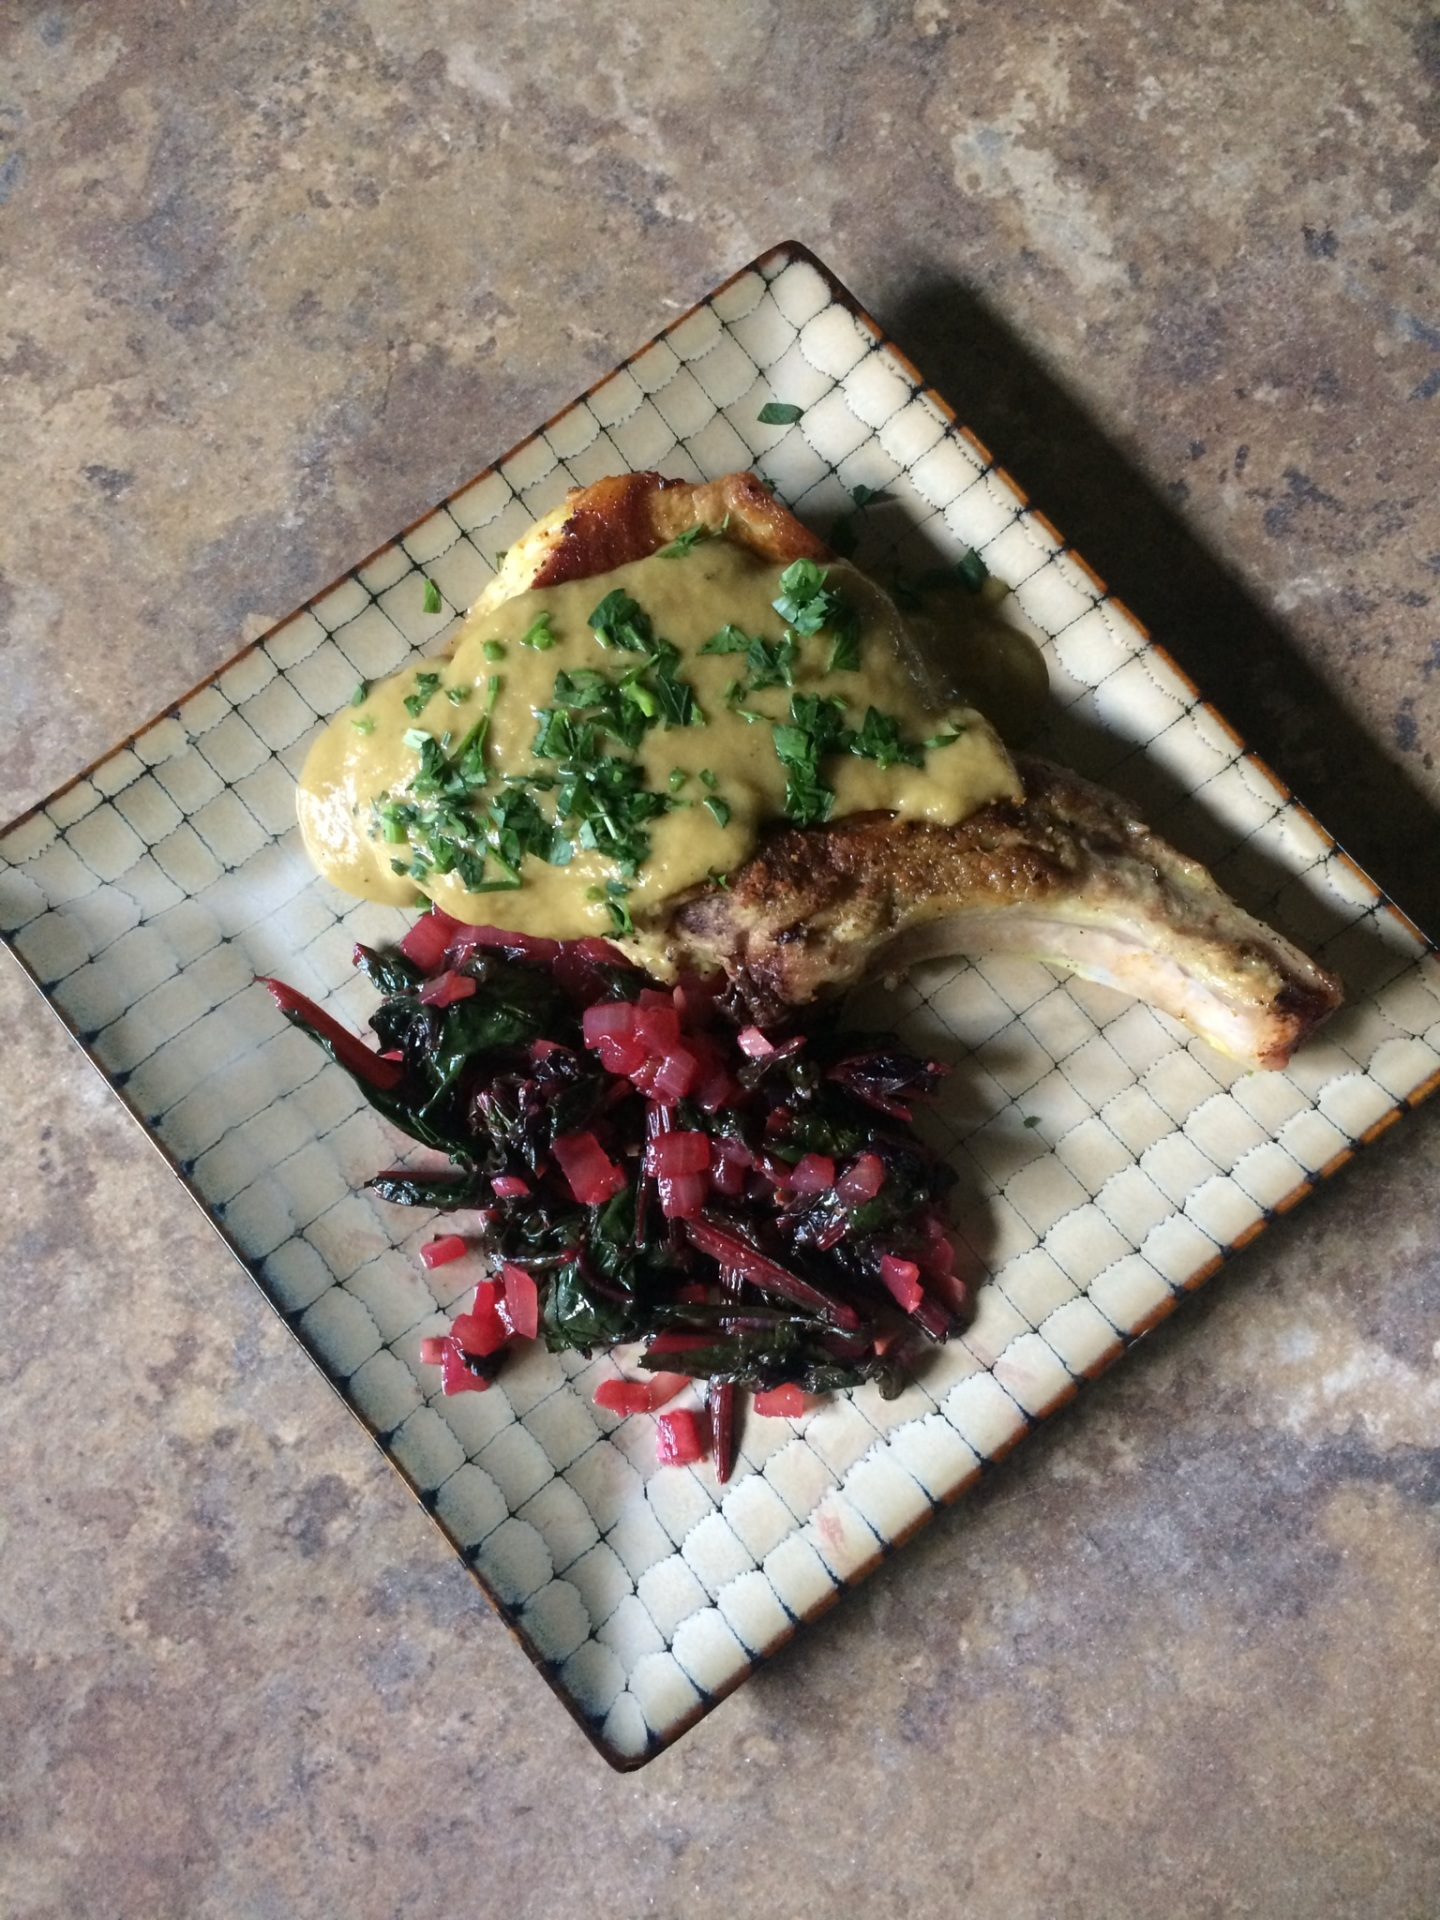 Pan-Seared Pork Chops with Apple-Rhubarb Gravy